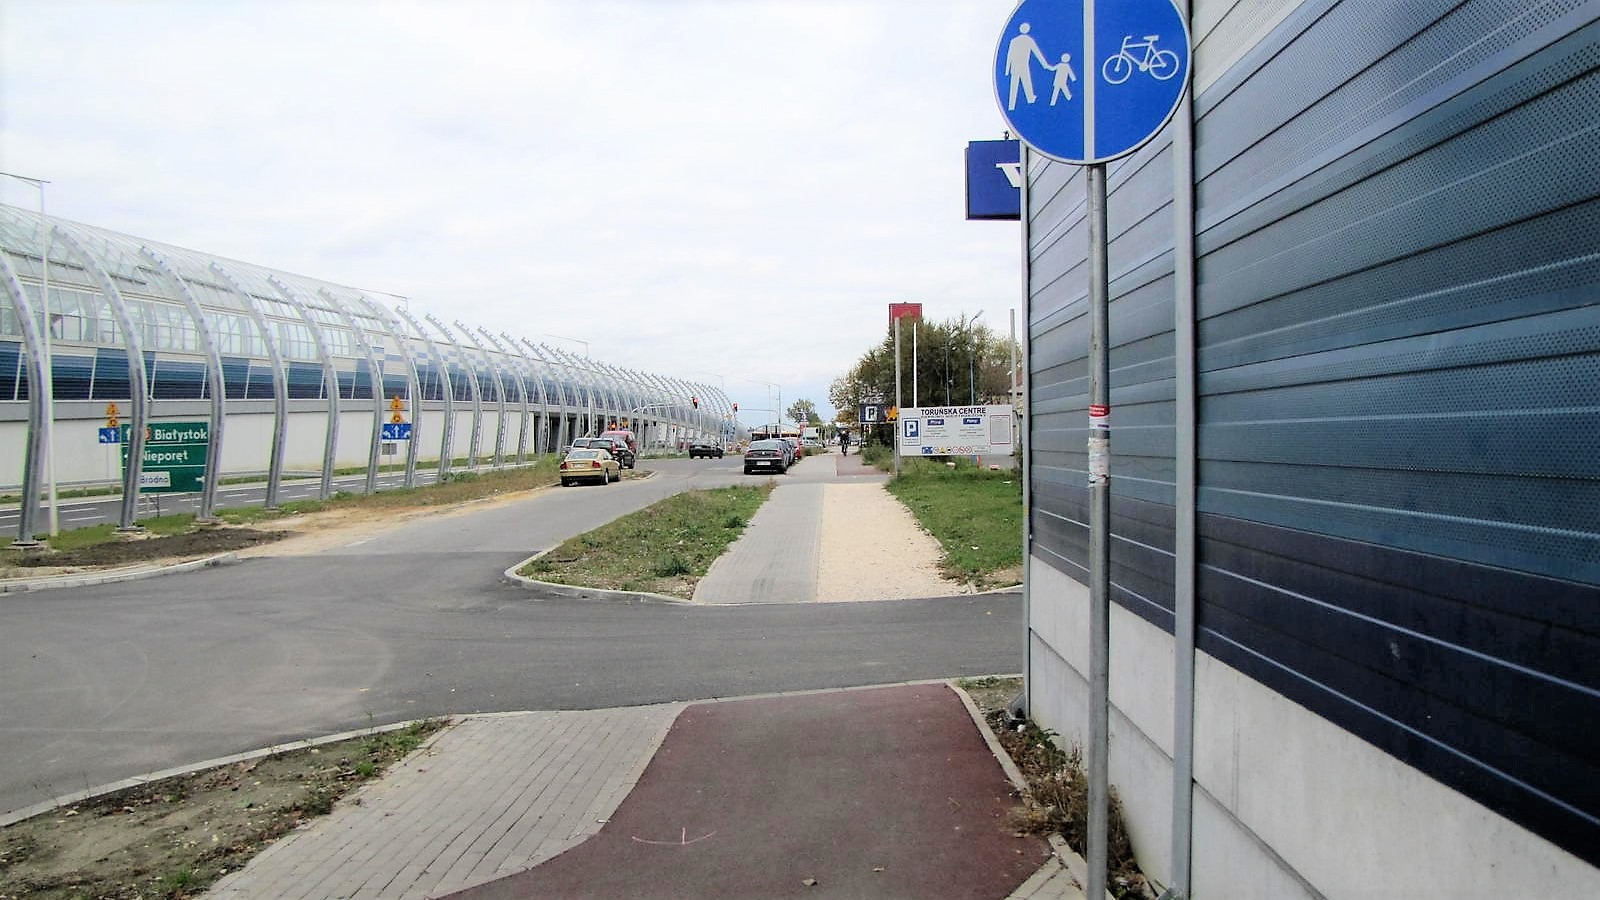 Many Member States lack the necessary knowledge on how to take into account the needs of cyclists. This cycling path was built as a part of a TEN-T road reconstruction project and underwent Road Safety Audit, but it is not safe to use because of lack of visibility on crossing.